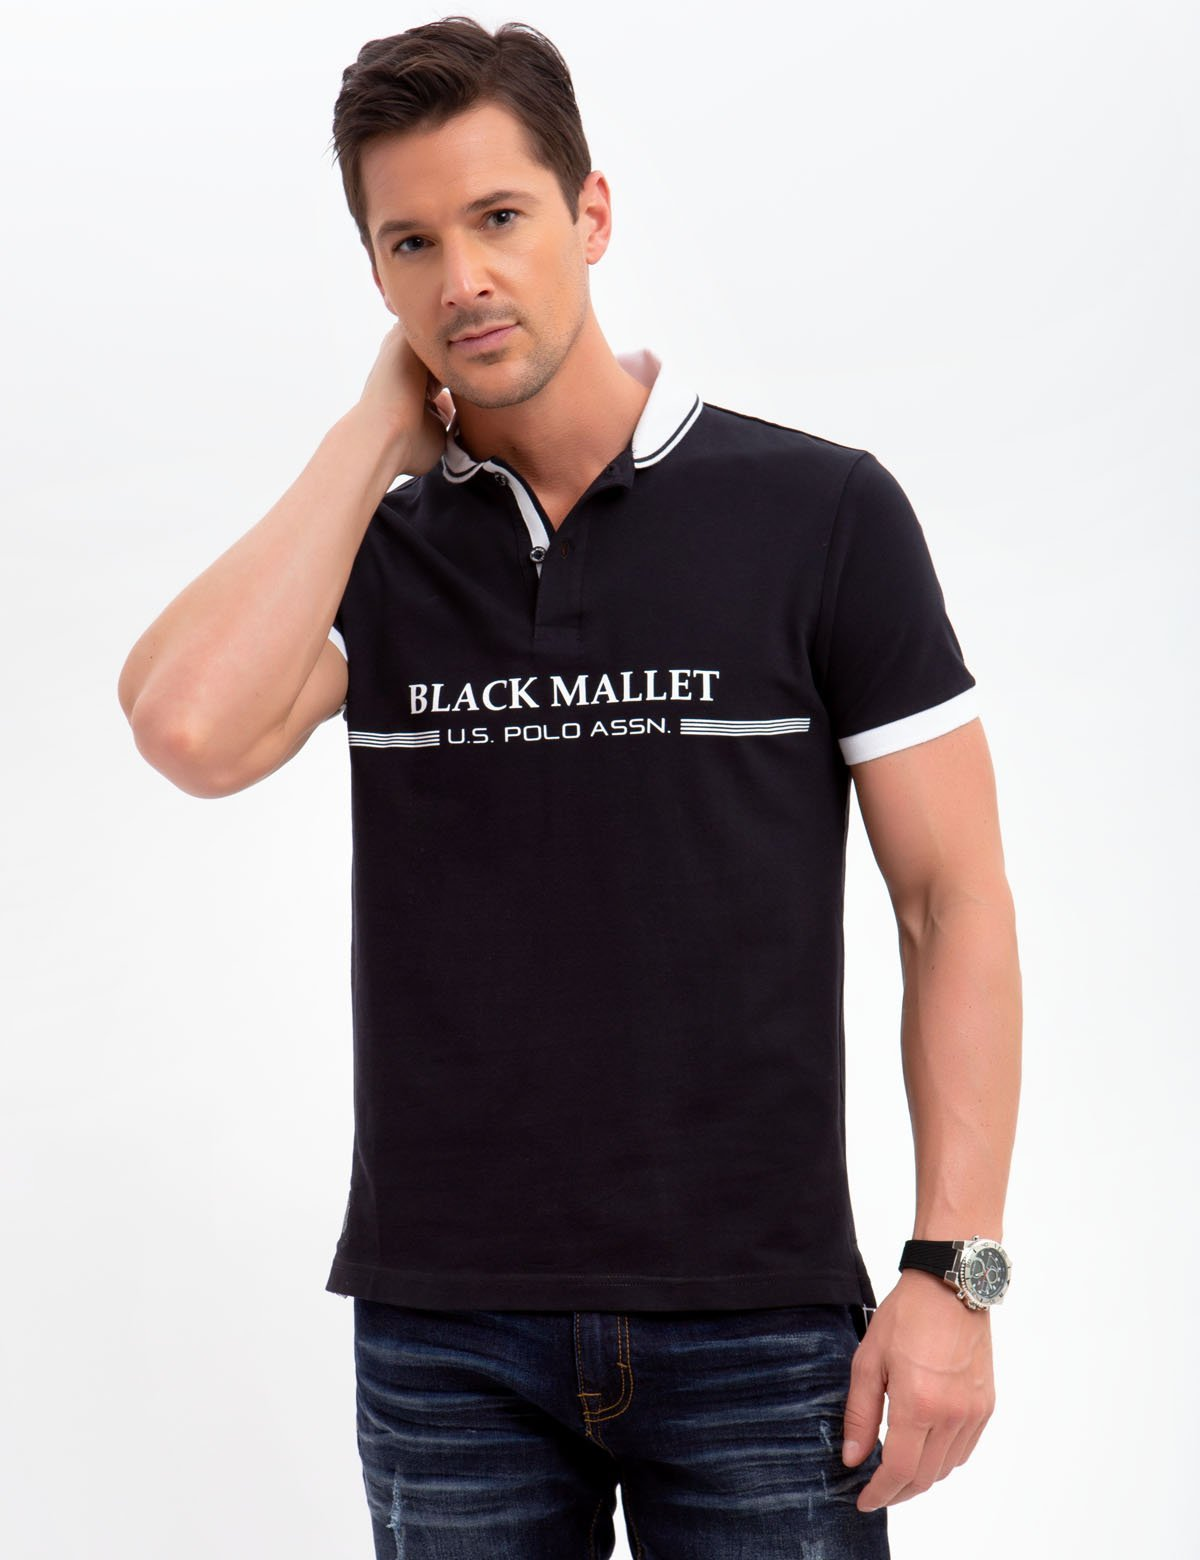 BLACK MALLET POLO SHIRT